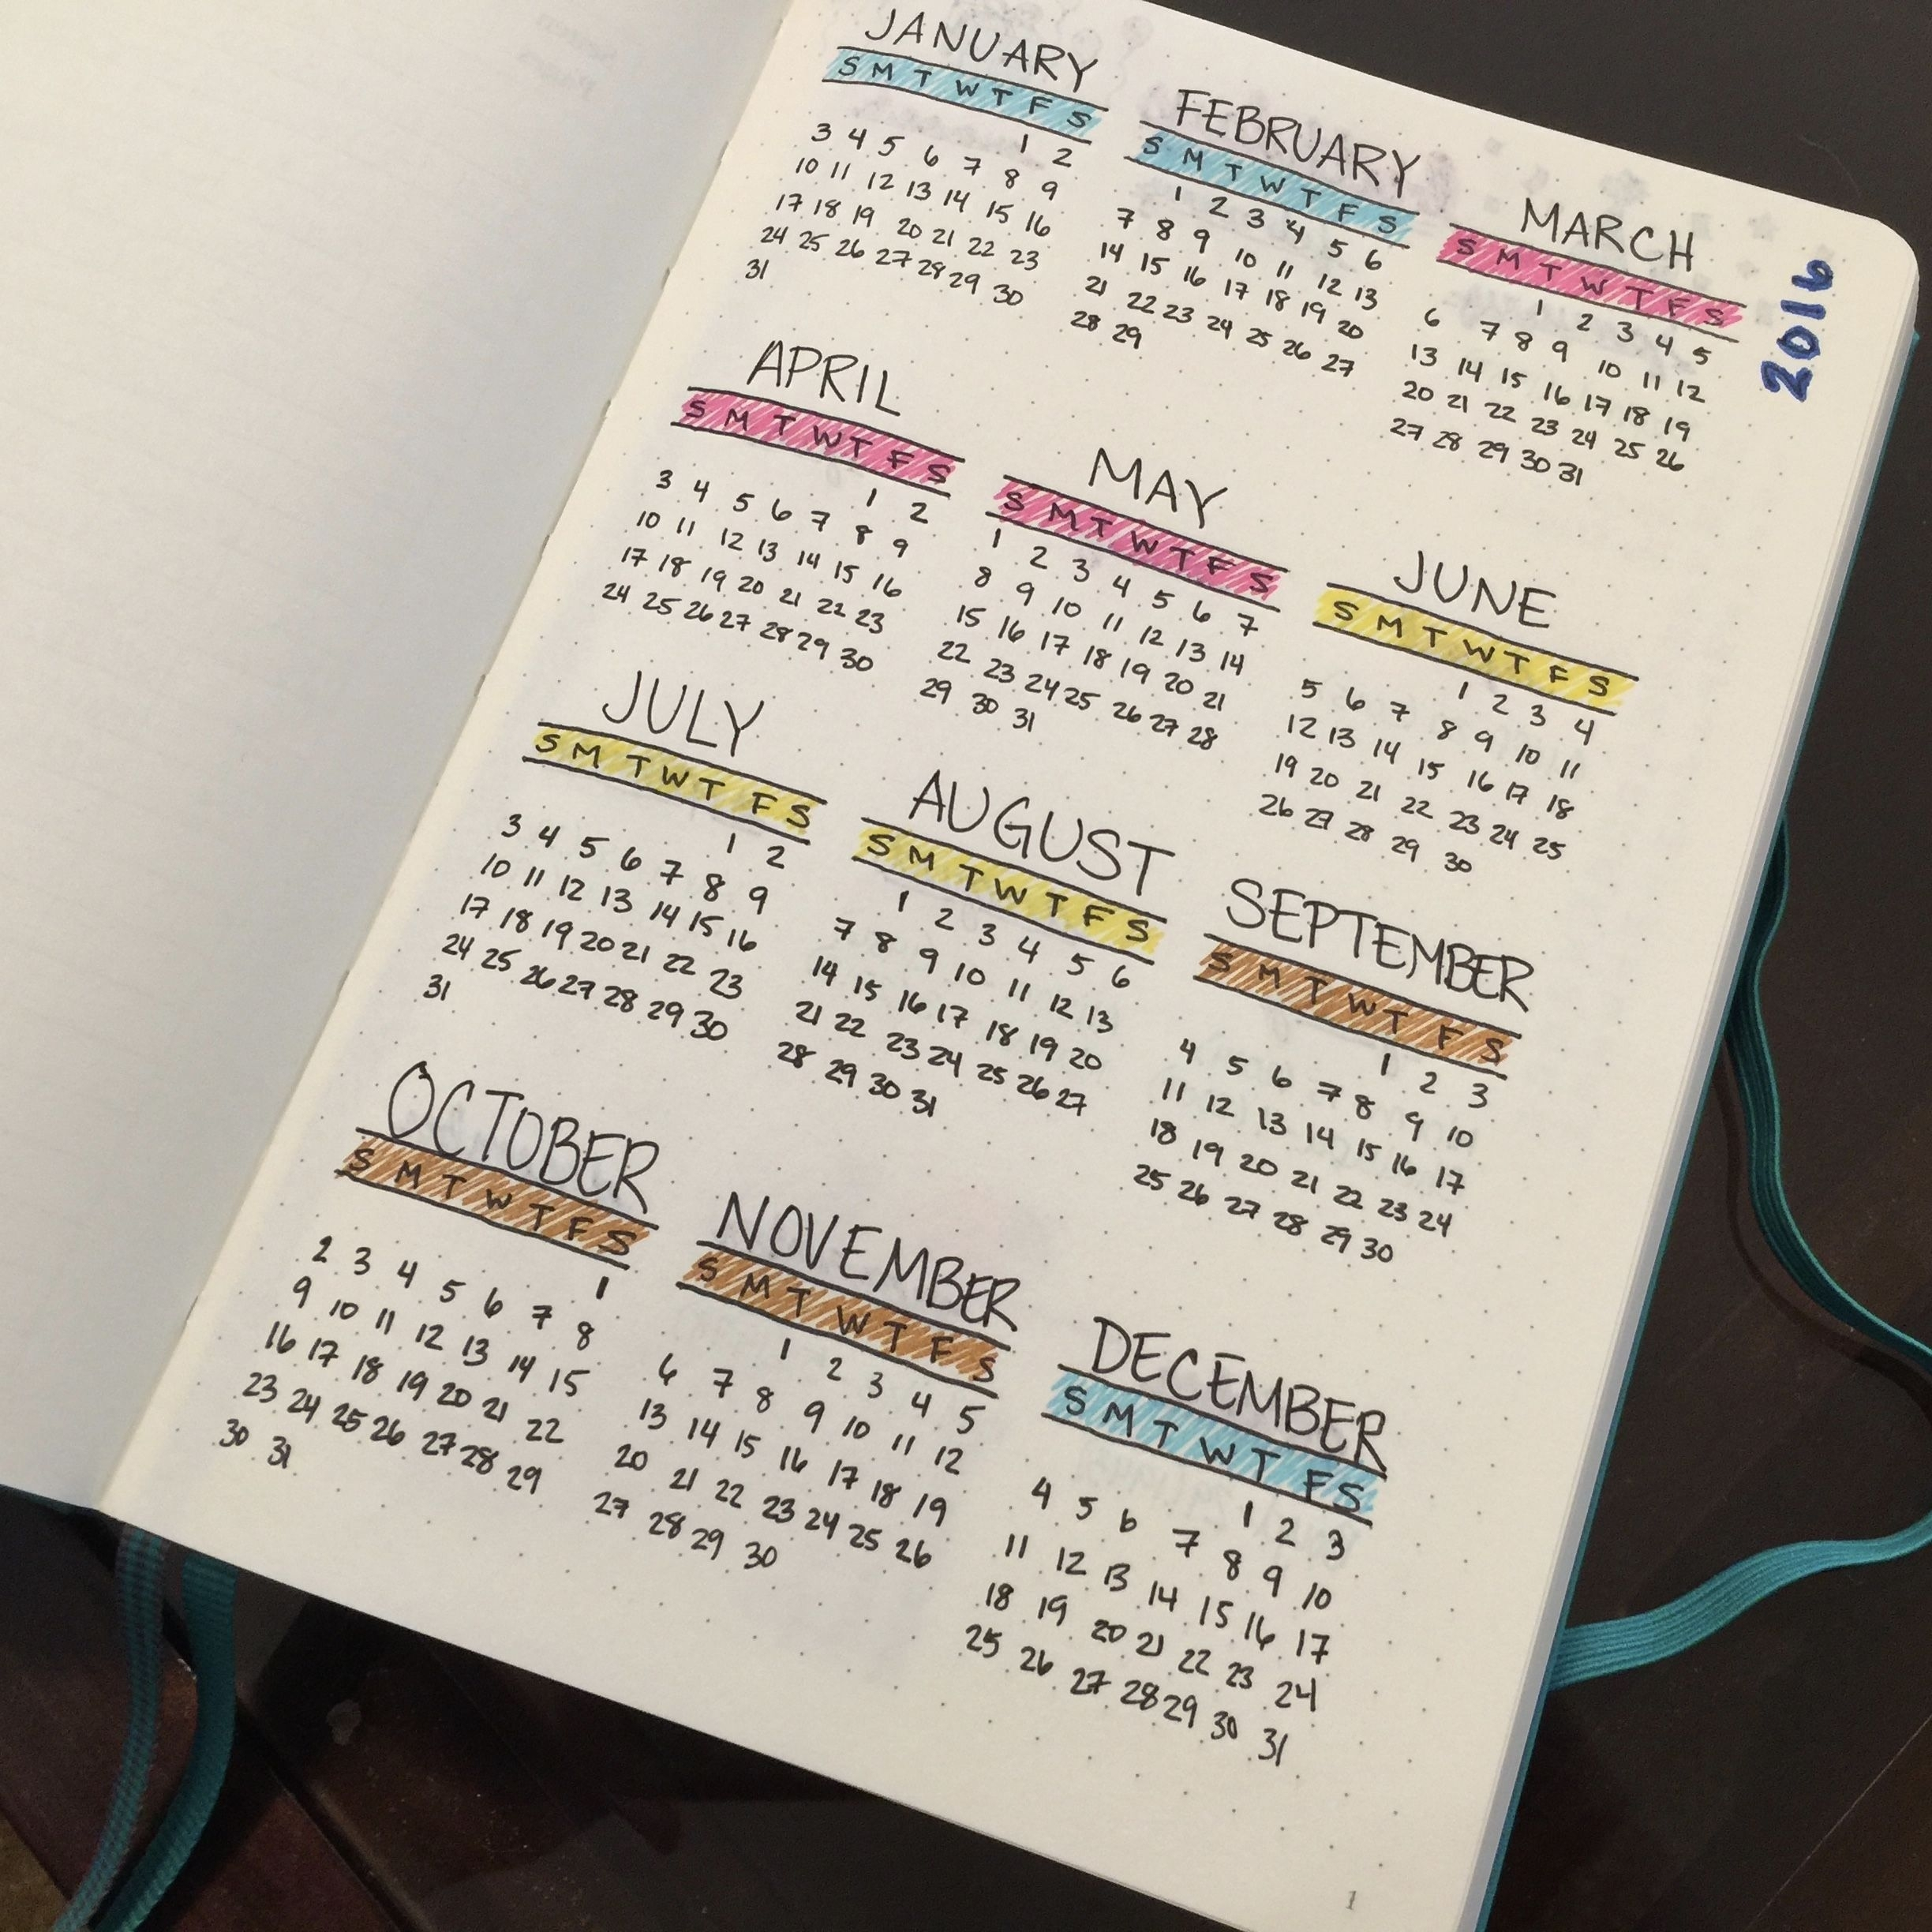 Year-At-A-Glance Calendar In My Bullet Journal, Color-Coded